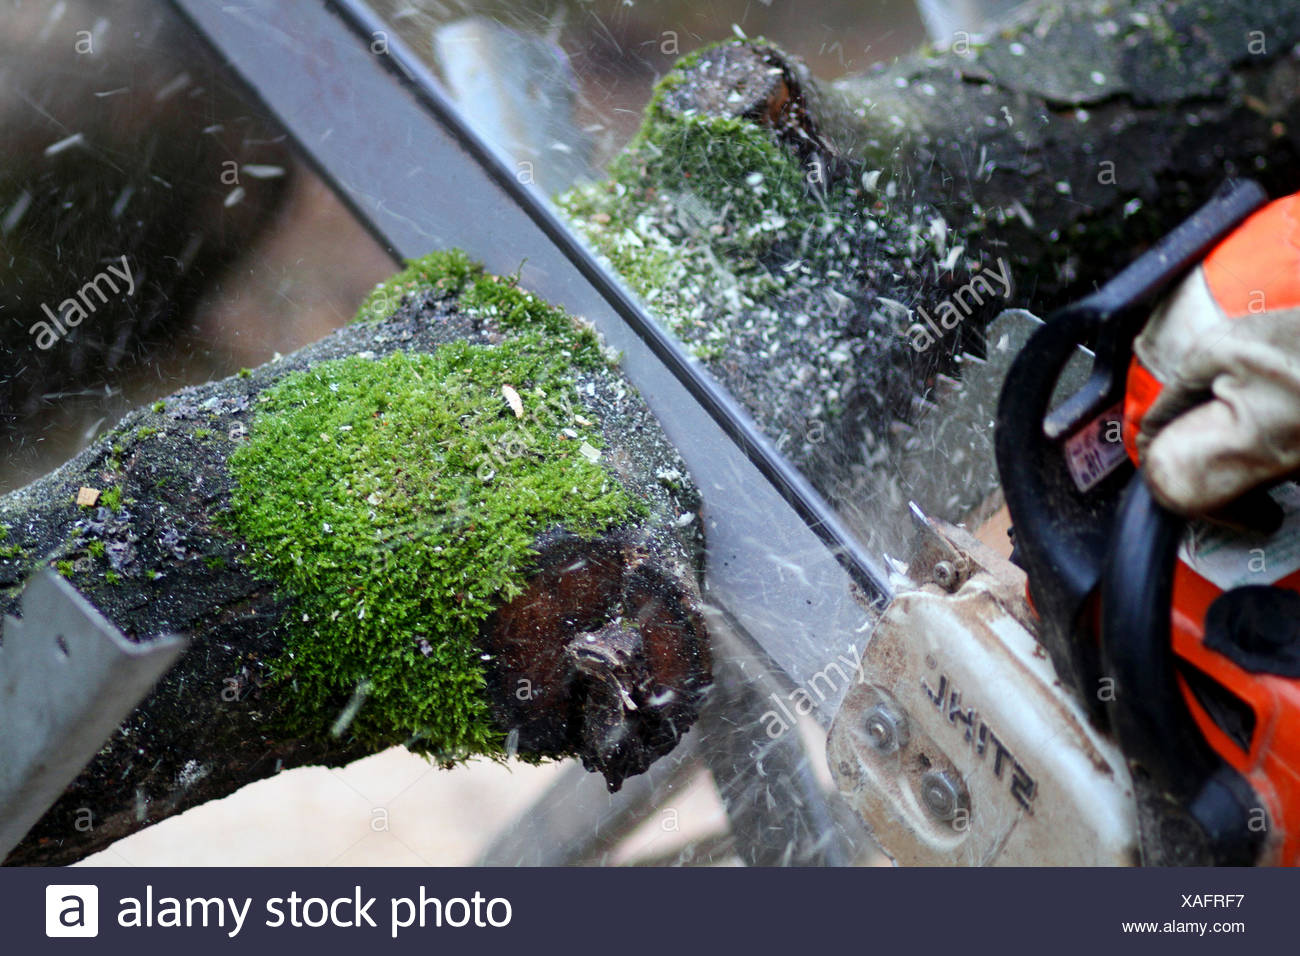 sawing through a tree trunk by chain saw, Germany Stock Photo